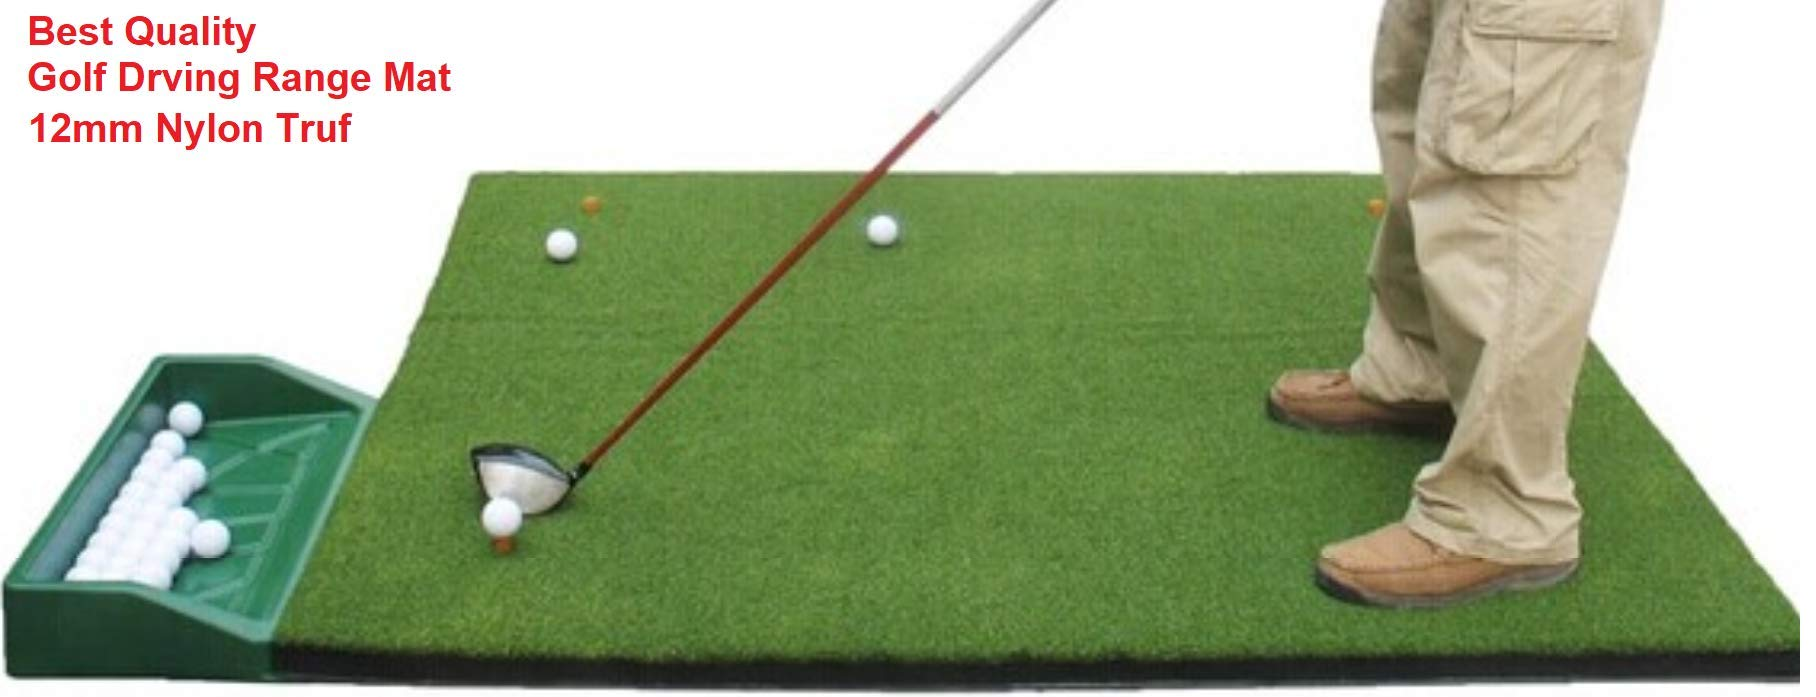 P4G 3' x 5' P4G Commercial Golf Mat ,Durable and Stable Golf Course Hitting Mat, with PE turf and TPR base, foldable Golf mats pack with carton box by P4G